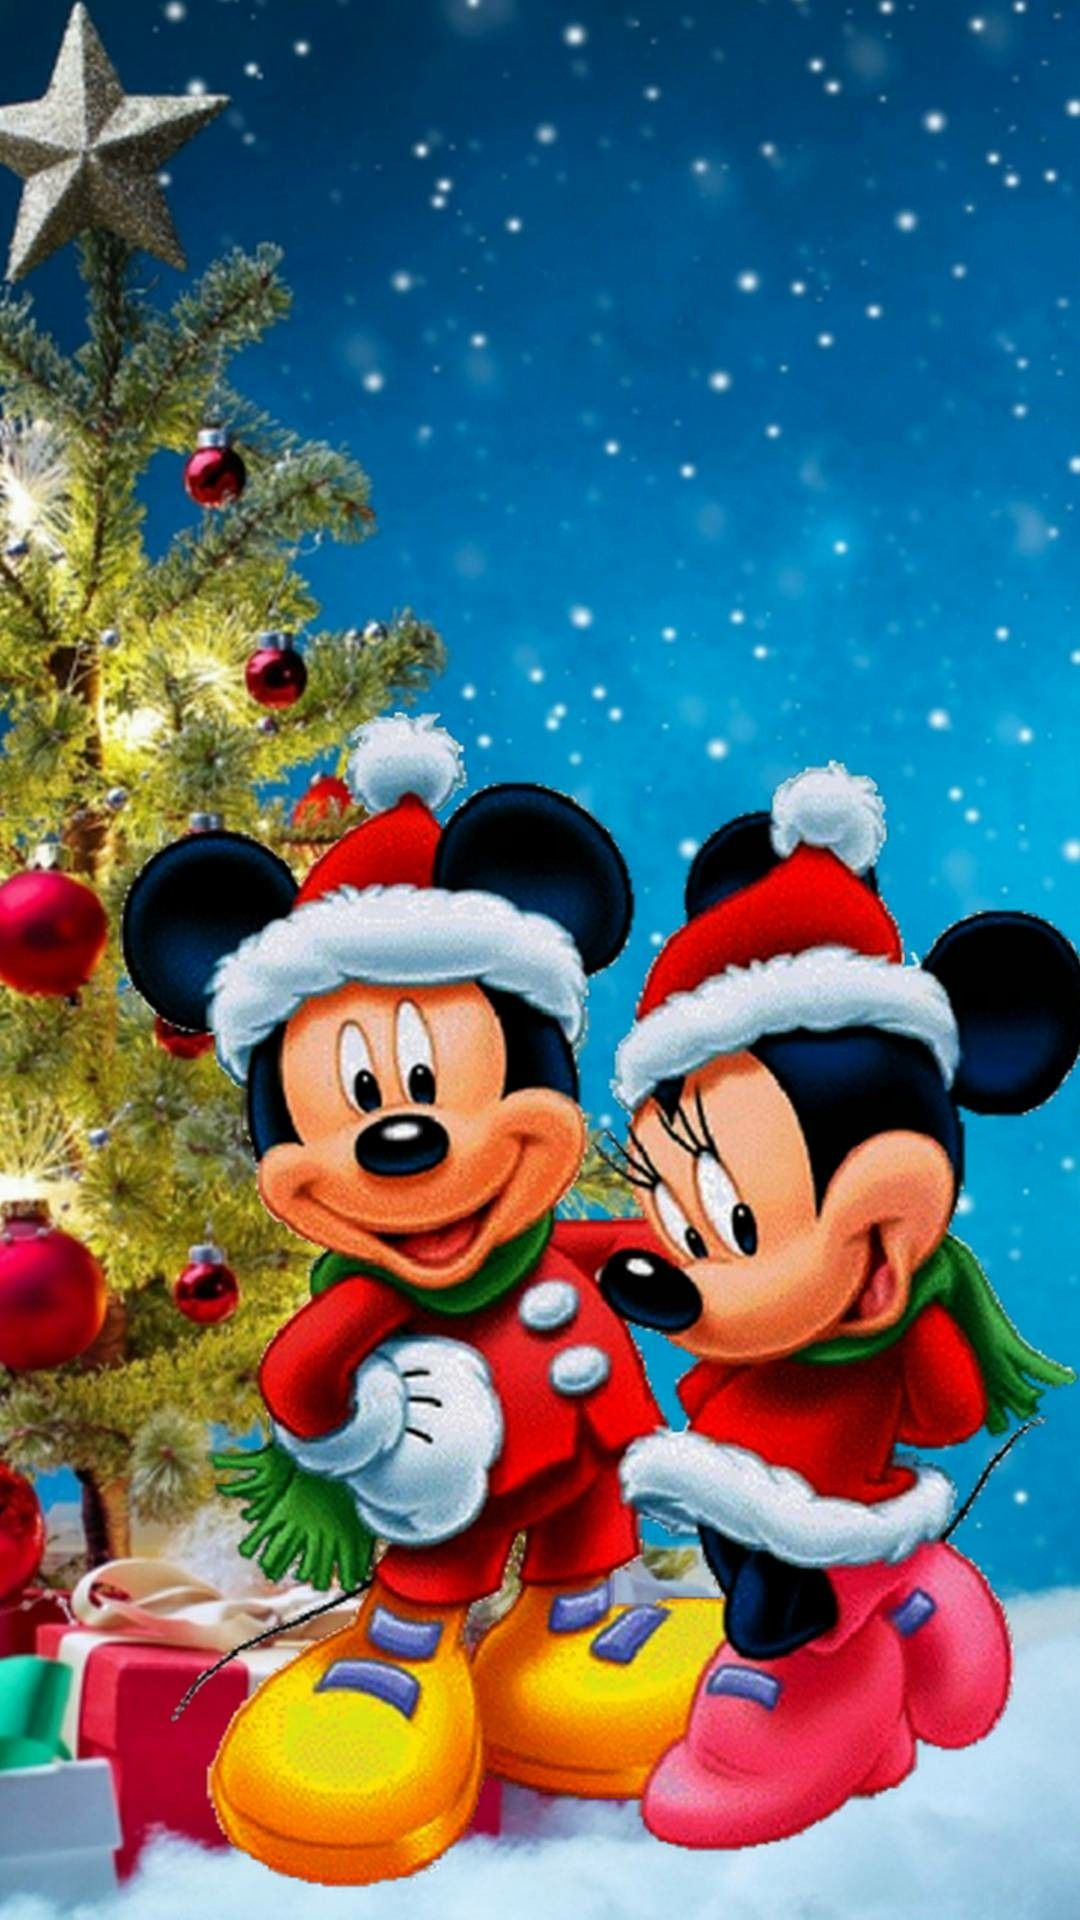 Mickey Minnie Christmas Mickey Mouse Wallpaper Mickey Mouse